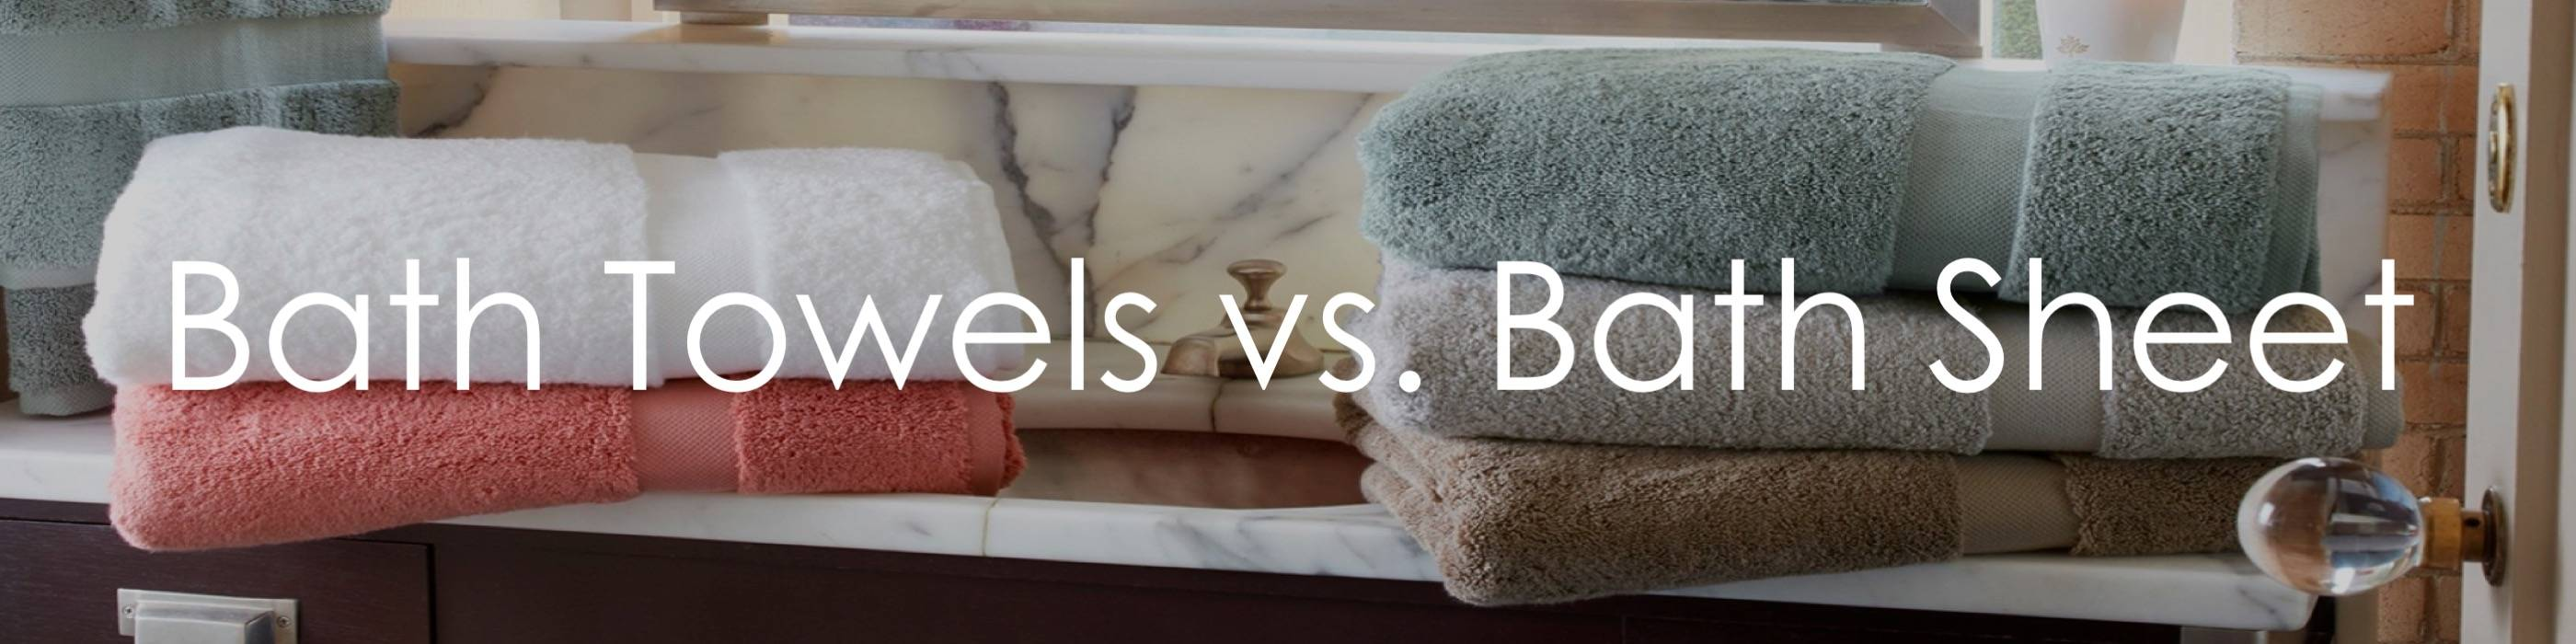 What Is The Difference Between A Bath Towel And A Bath Sheet